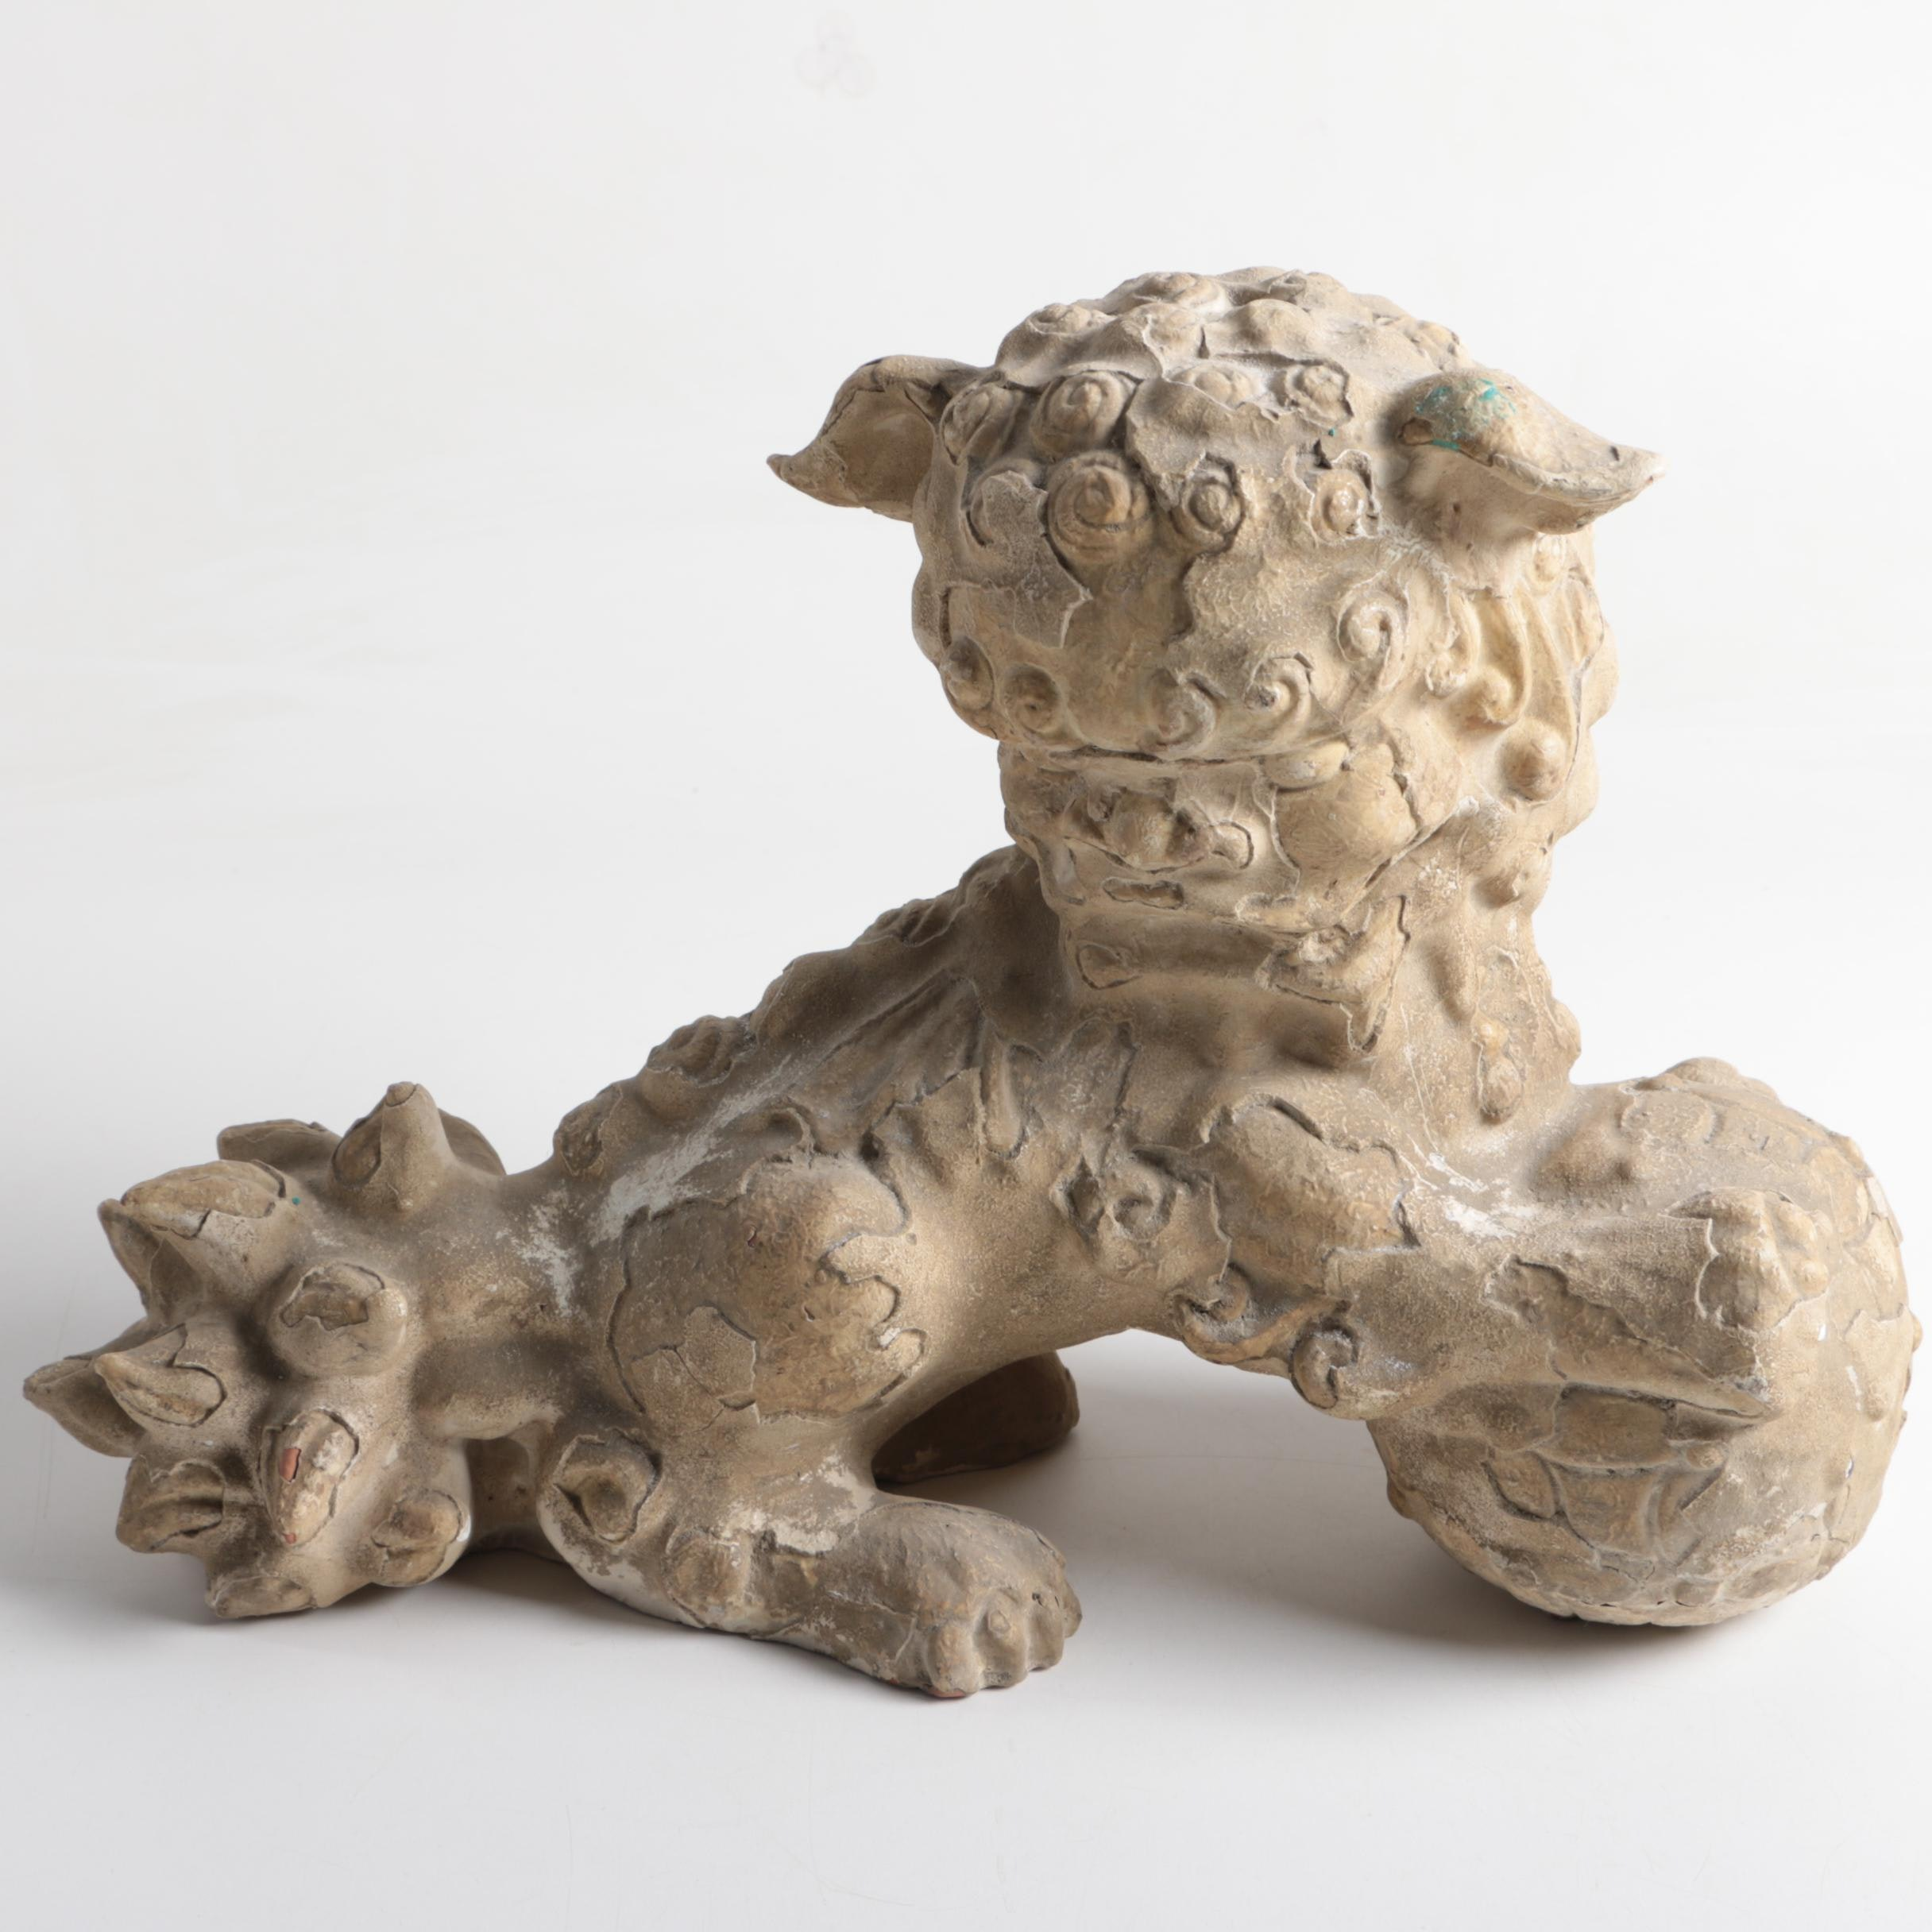 Chinese Inspired Ceramic Guardian Lion with Ball Figurine